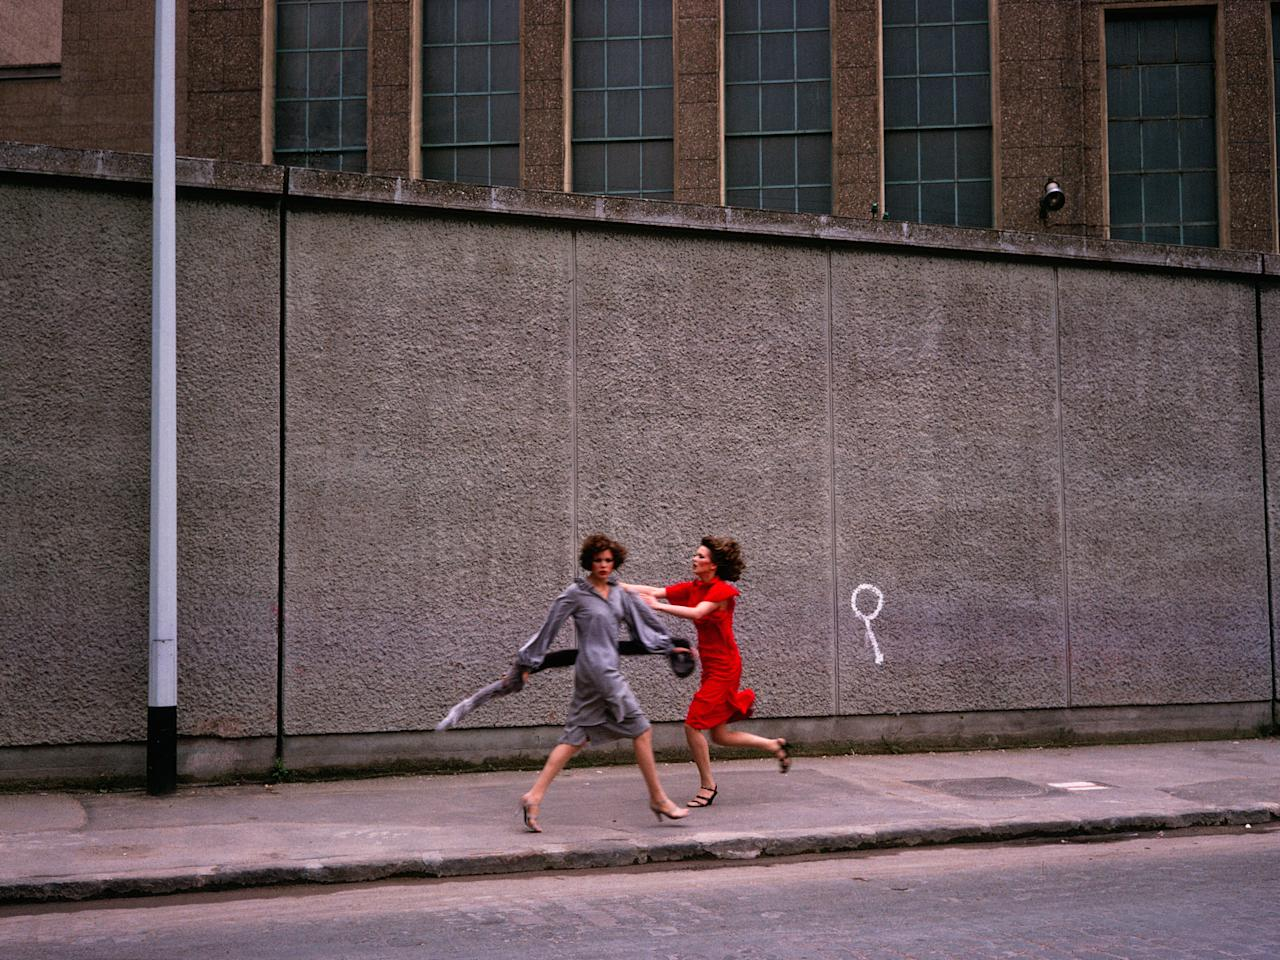 <p>Adjacent to its Parisian headquarters, Chloé has unveiled a new cultural space, a five-floor home which will see a programme of exhibitions and events showcasing the company's 65-year history. The exhibits will reflect the ongoing story of who the Chloé girl is and how the house has given women the freedom to be themselves.</p><p><span>The first temporary exhibition, 'Femininities' – which is open now – focuses on Guy Bourdin, the photographer behind the greatest number of editorials featuring Chloé clothes. </span></p><p><span>Scroll through to see a preview of the imagery in the exhibition and prepare for many more unseen images and clothing from the archive if you have the chance to see the exhibition in Paris.</span></p>